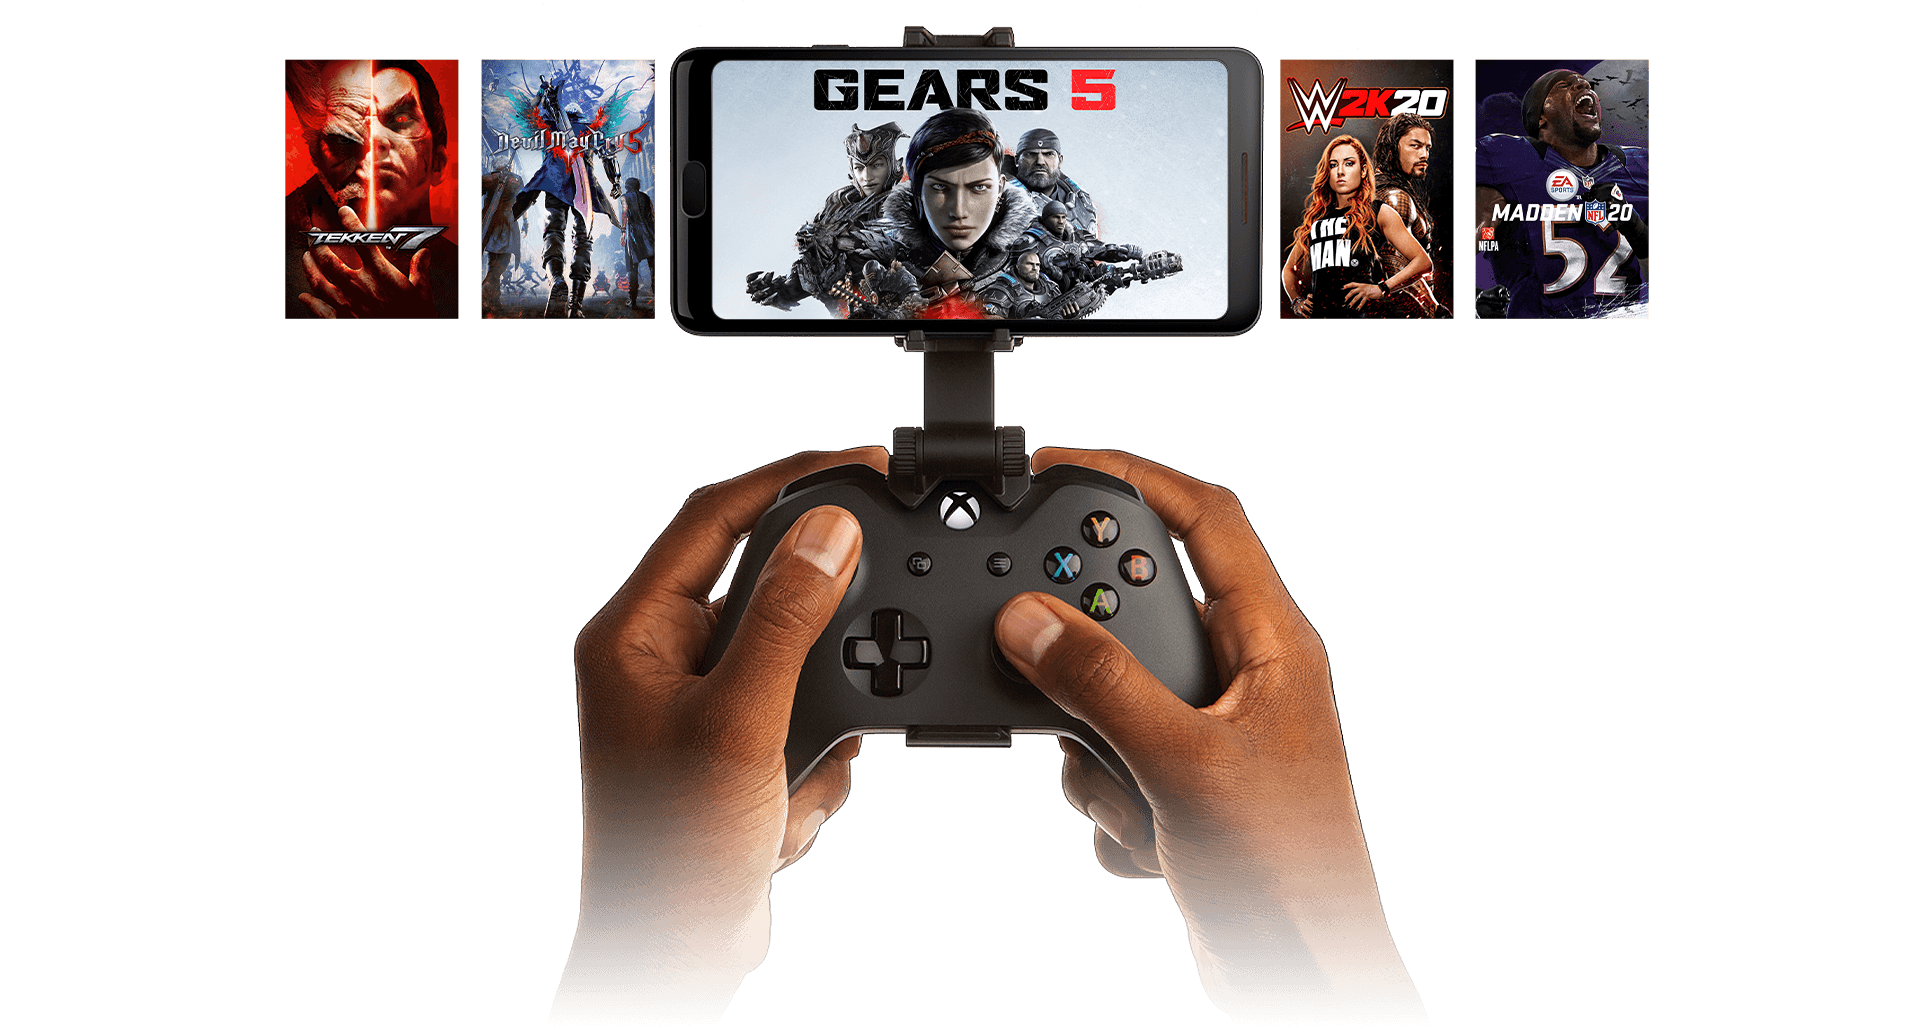 Hands holding a controller clipped to a phone playing Gears 5, with additional games pictured in the background